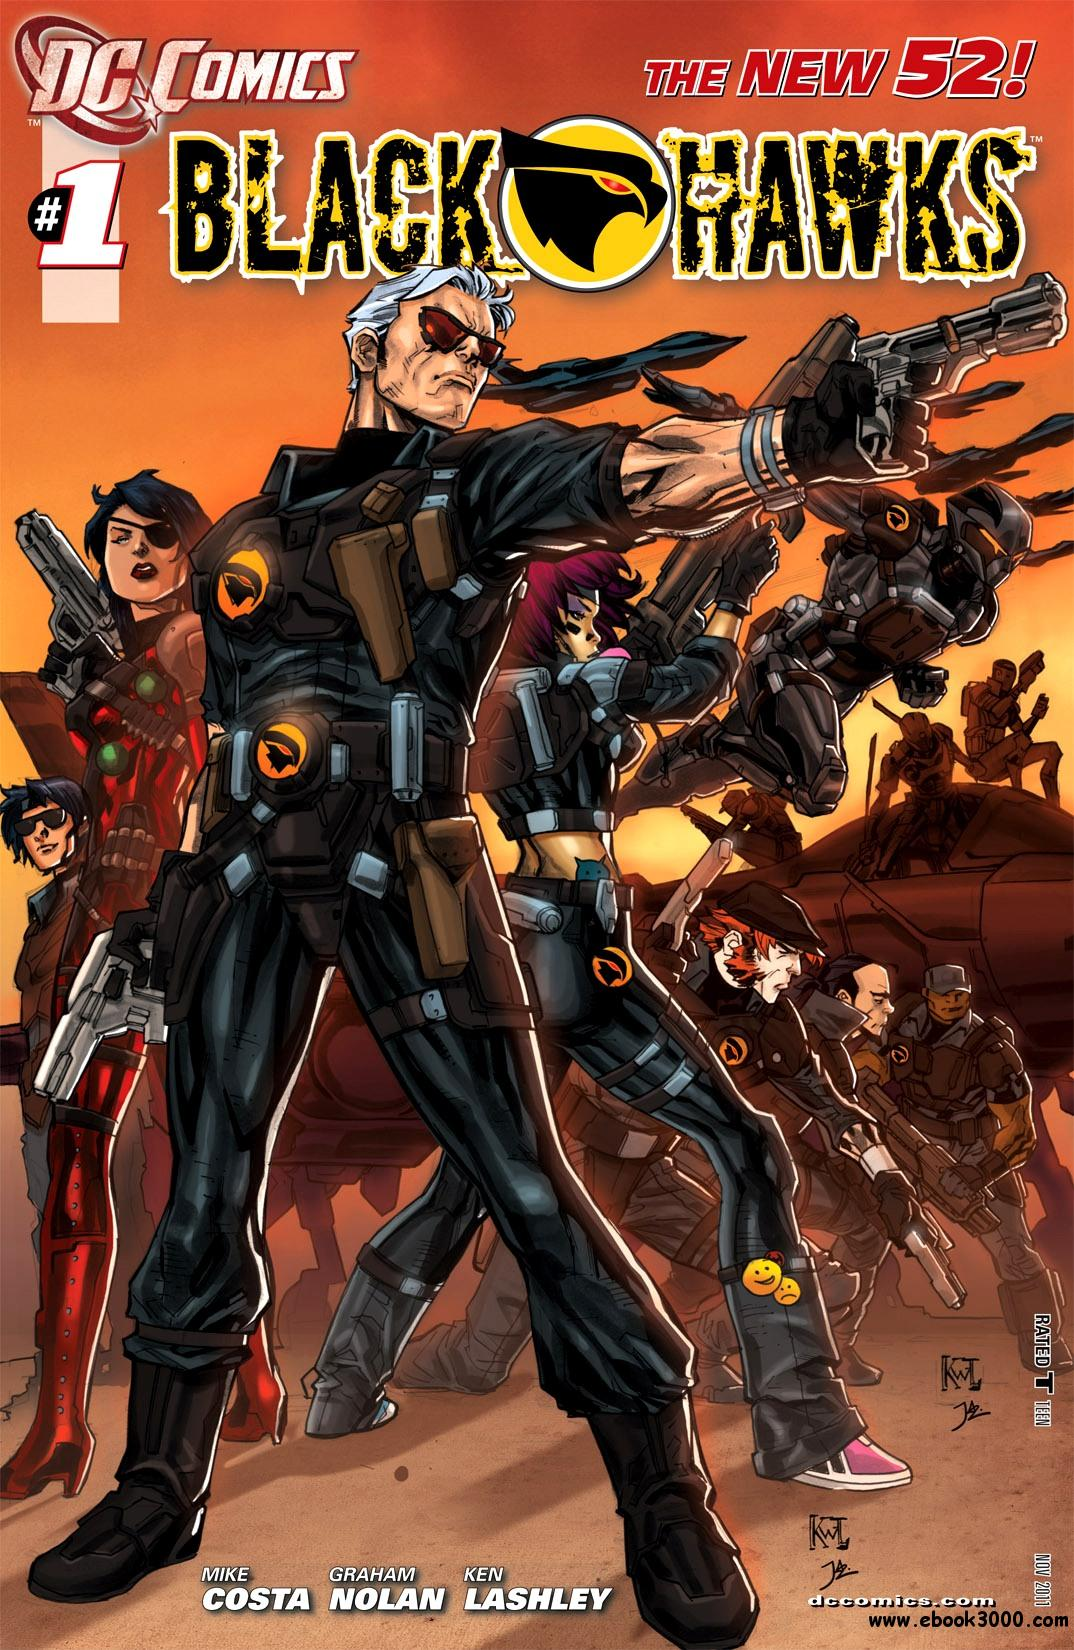 Blackhawks #1 (2011) free download